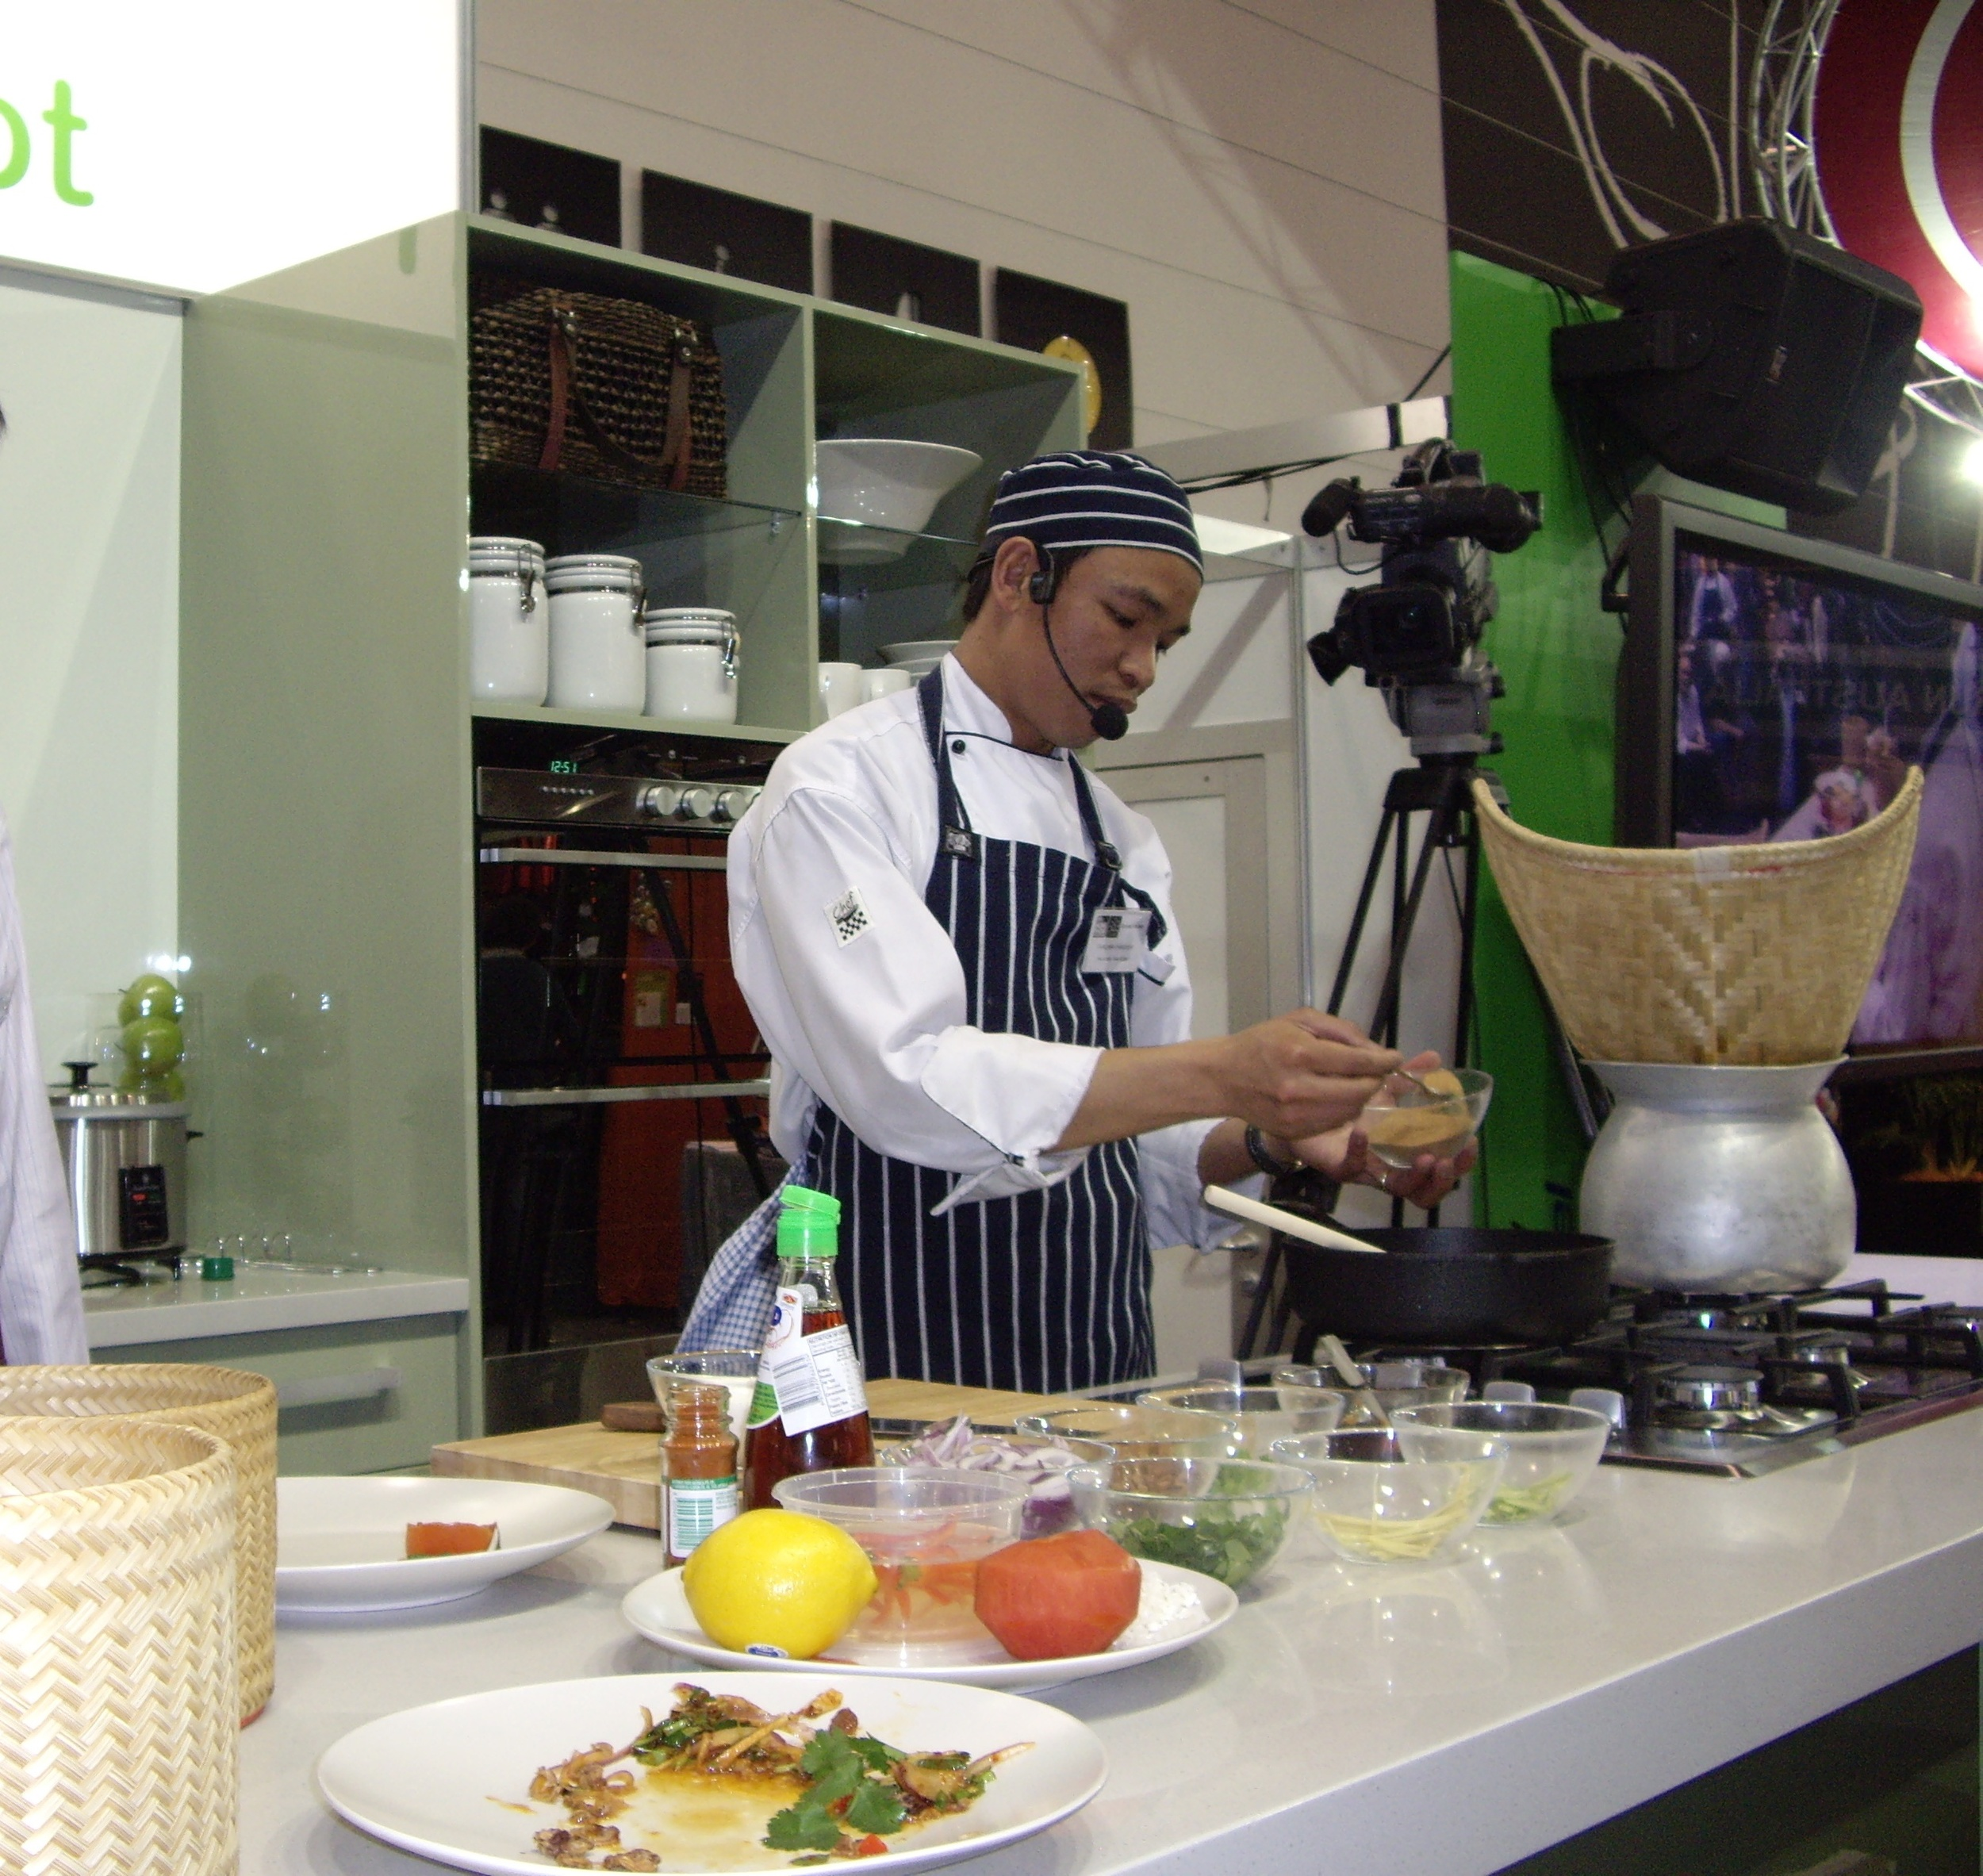 Join Thai masterChef Chaleom Chaiseeha's cooking class at Paladarr Restaurant in Alphington Melbourne